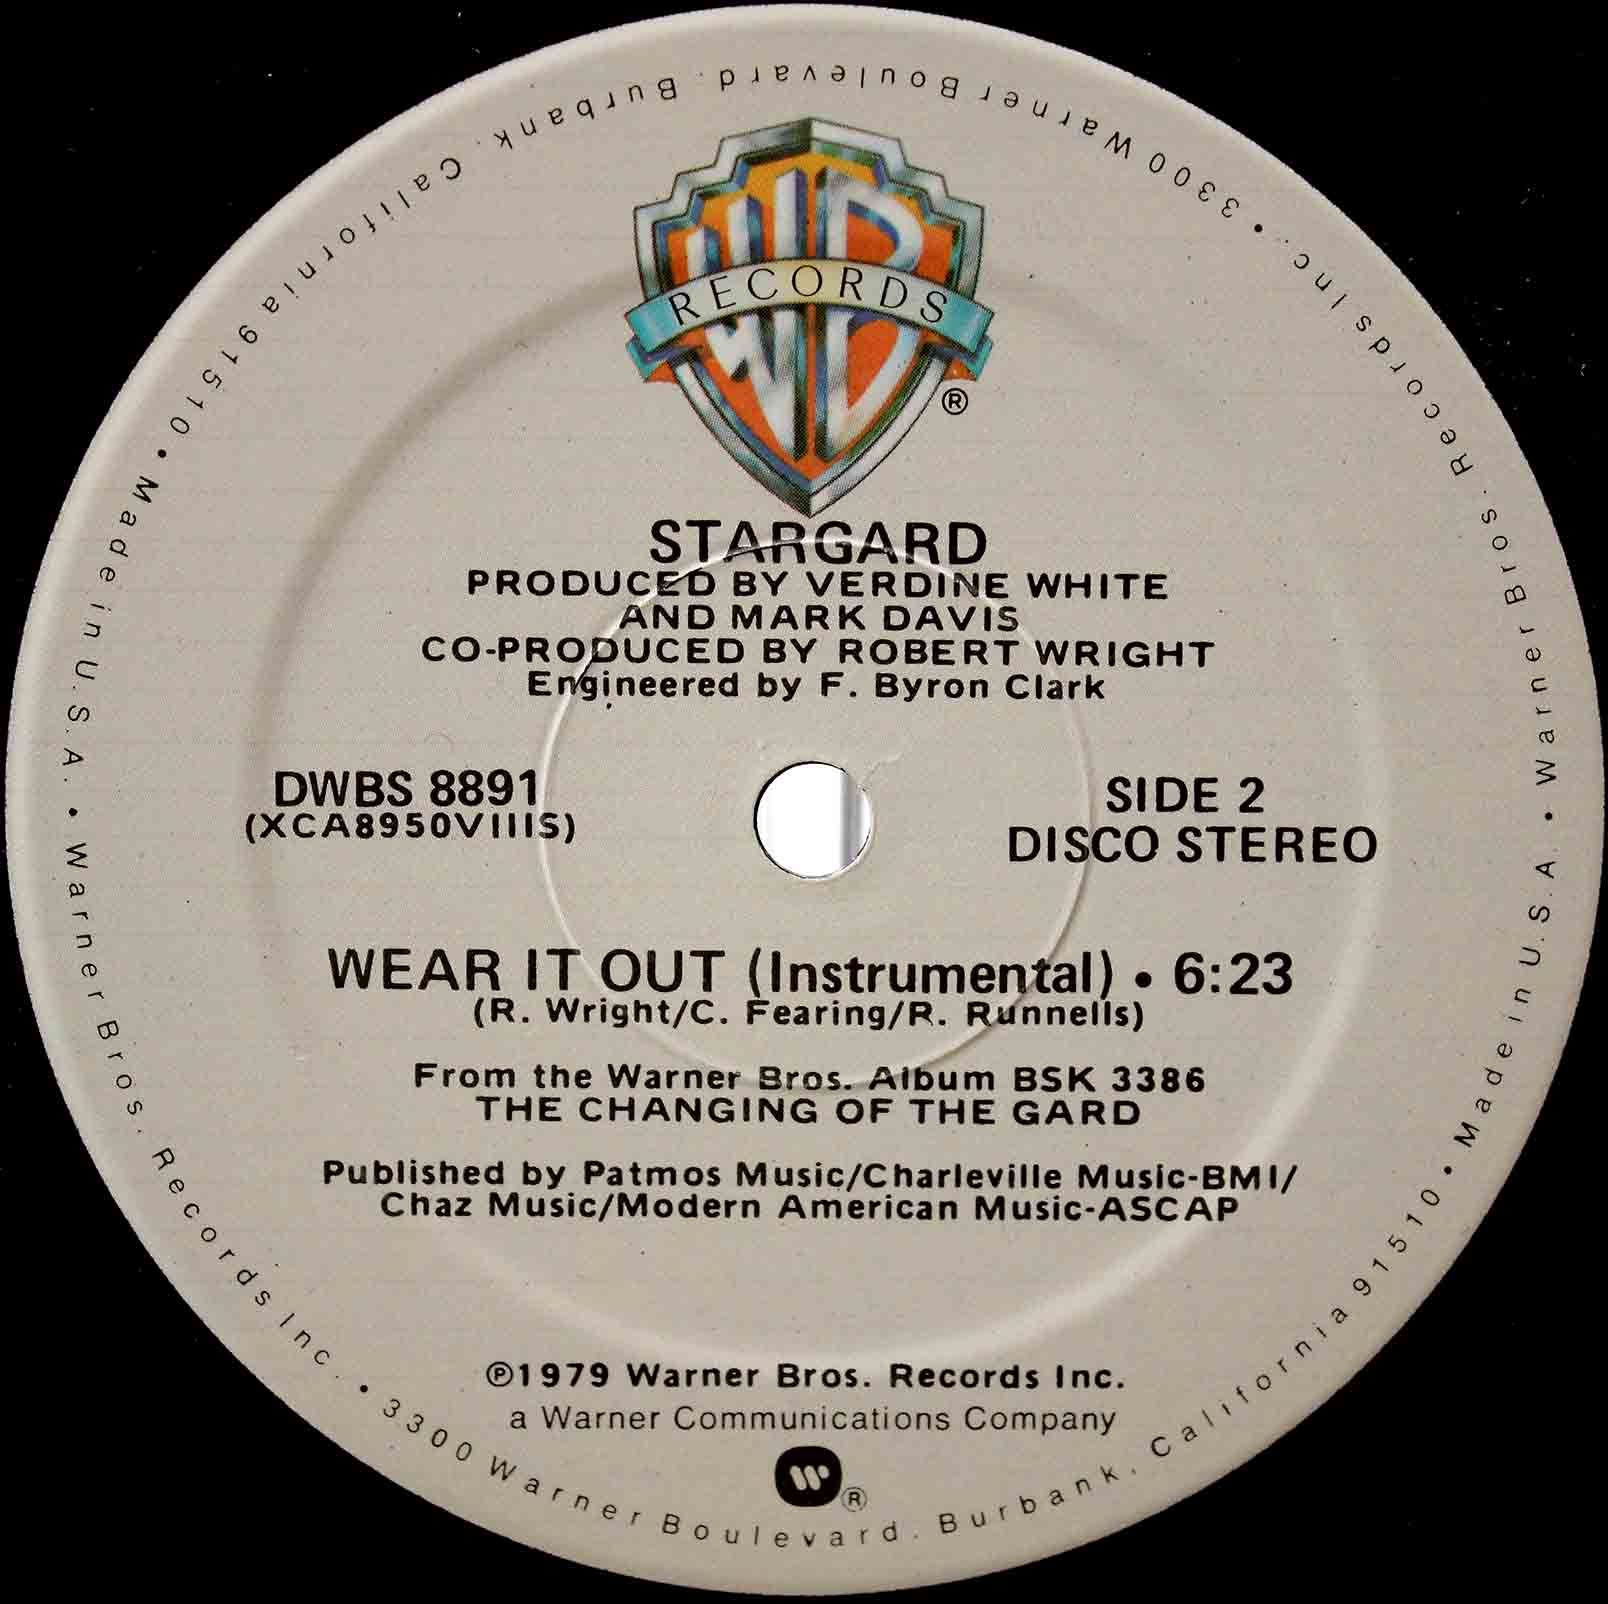 Stargard - Wear it out 04